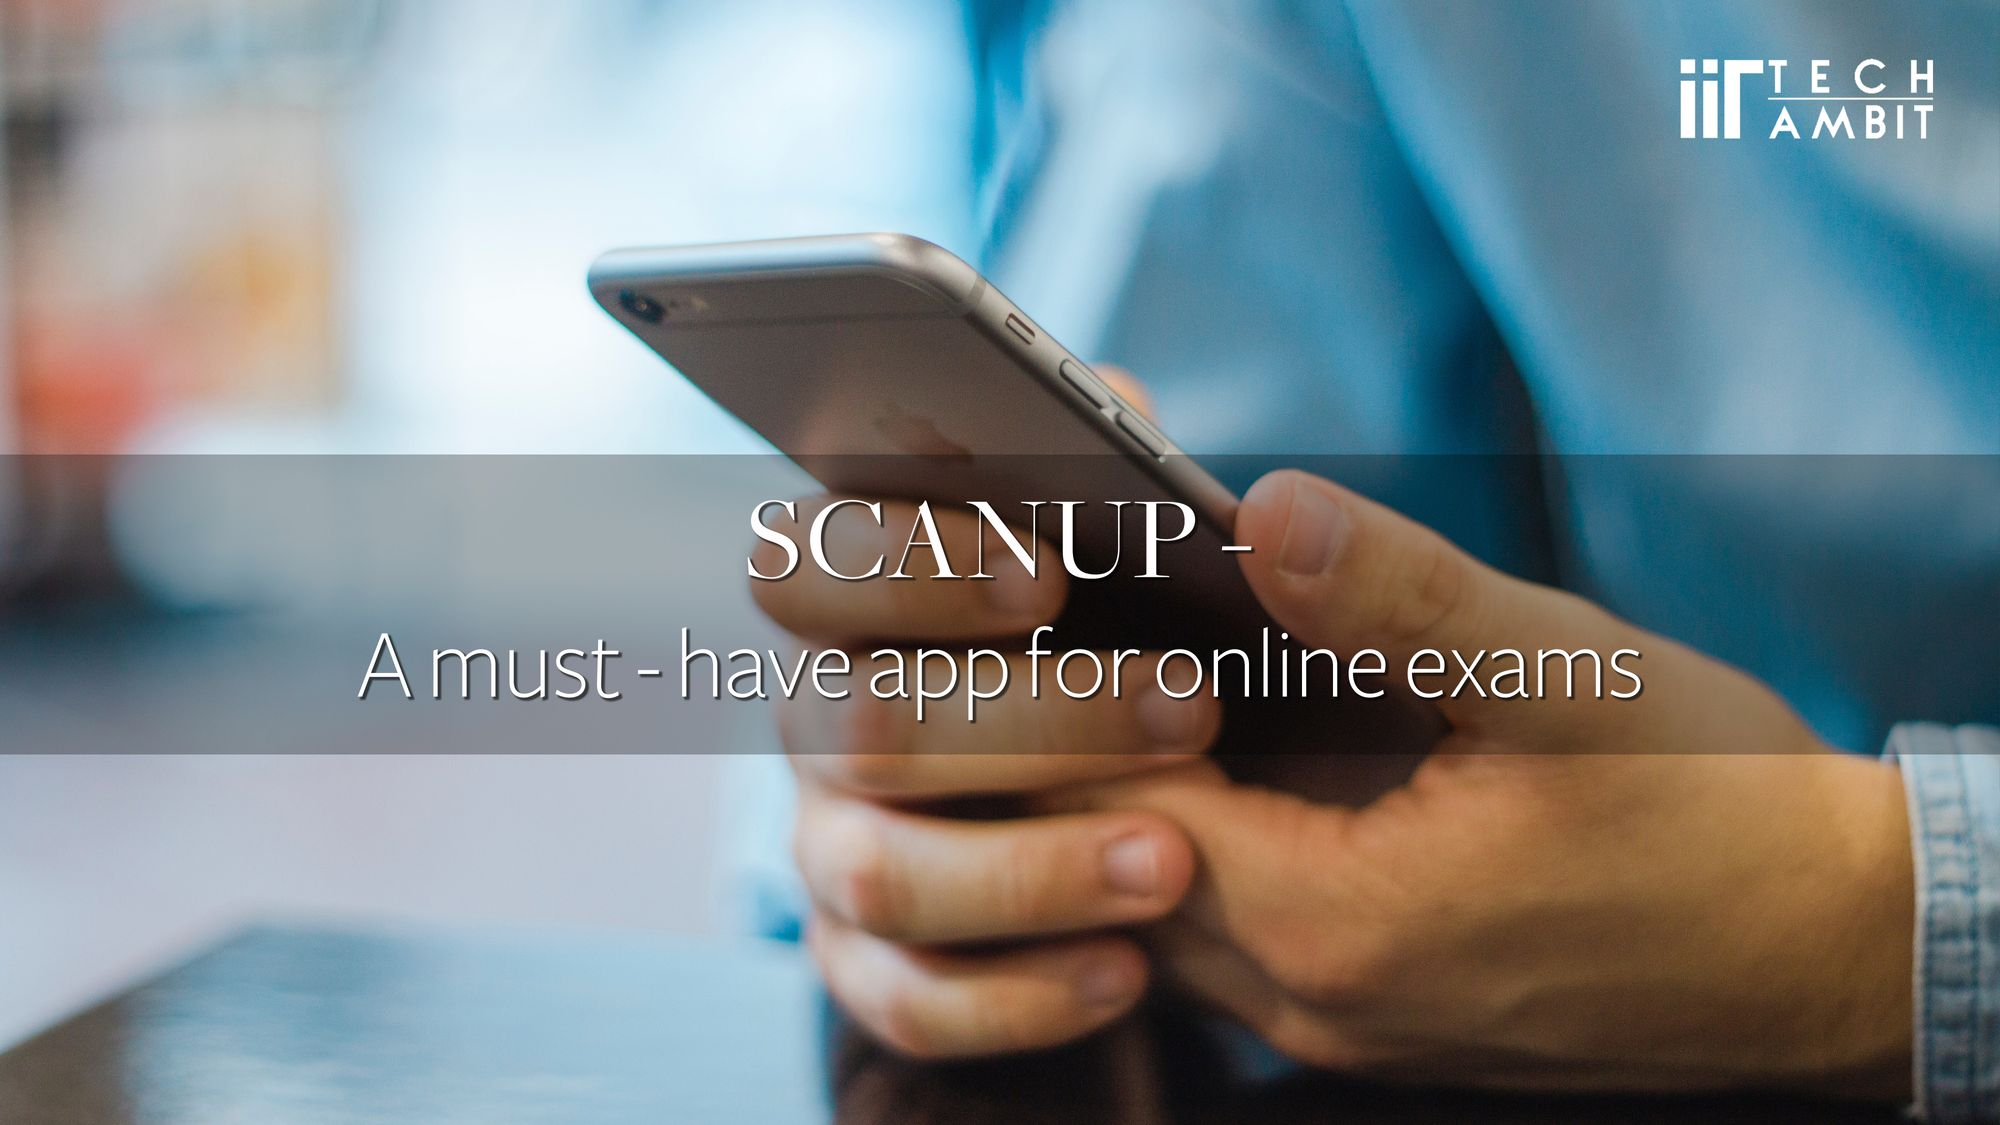 ScanUp- a must-have app for online exams